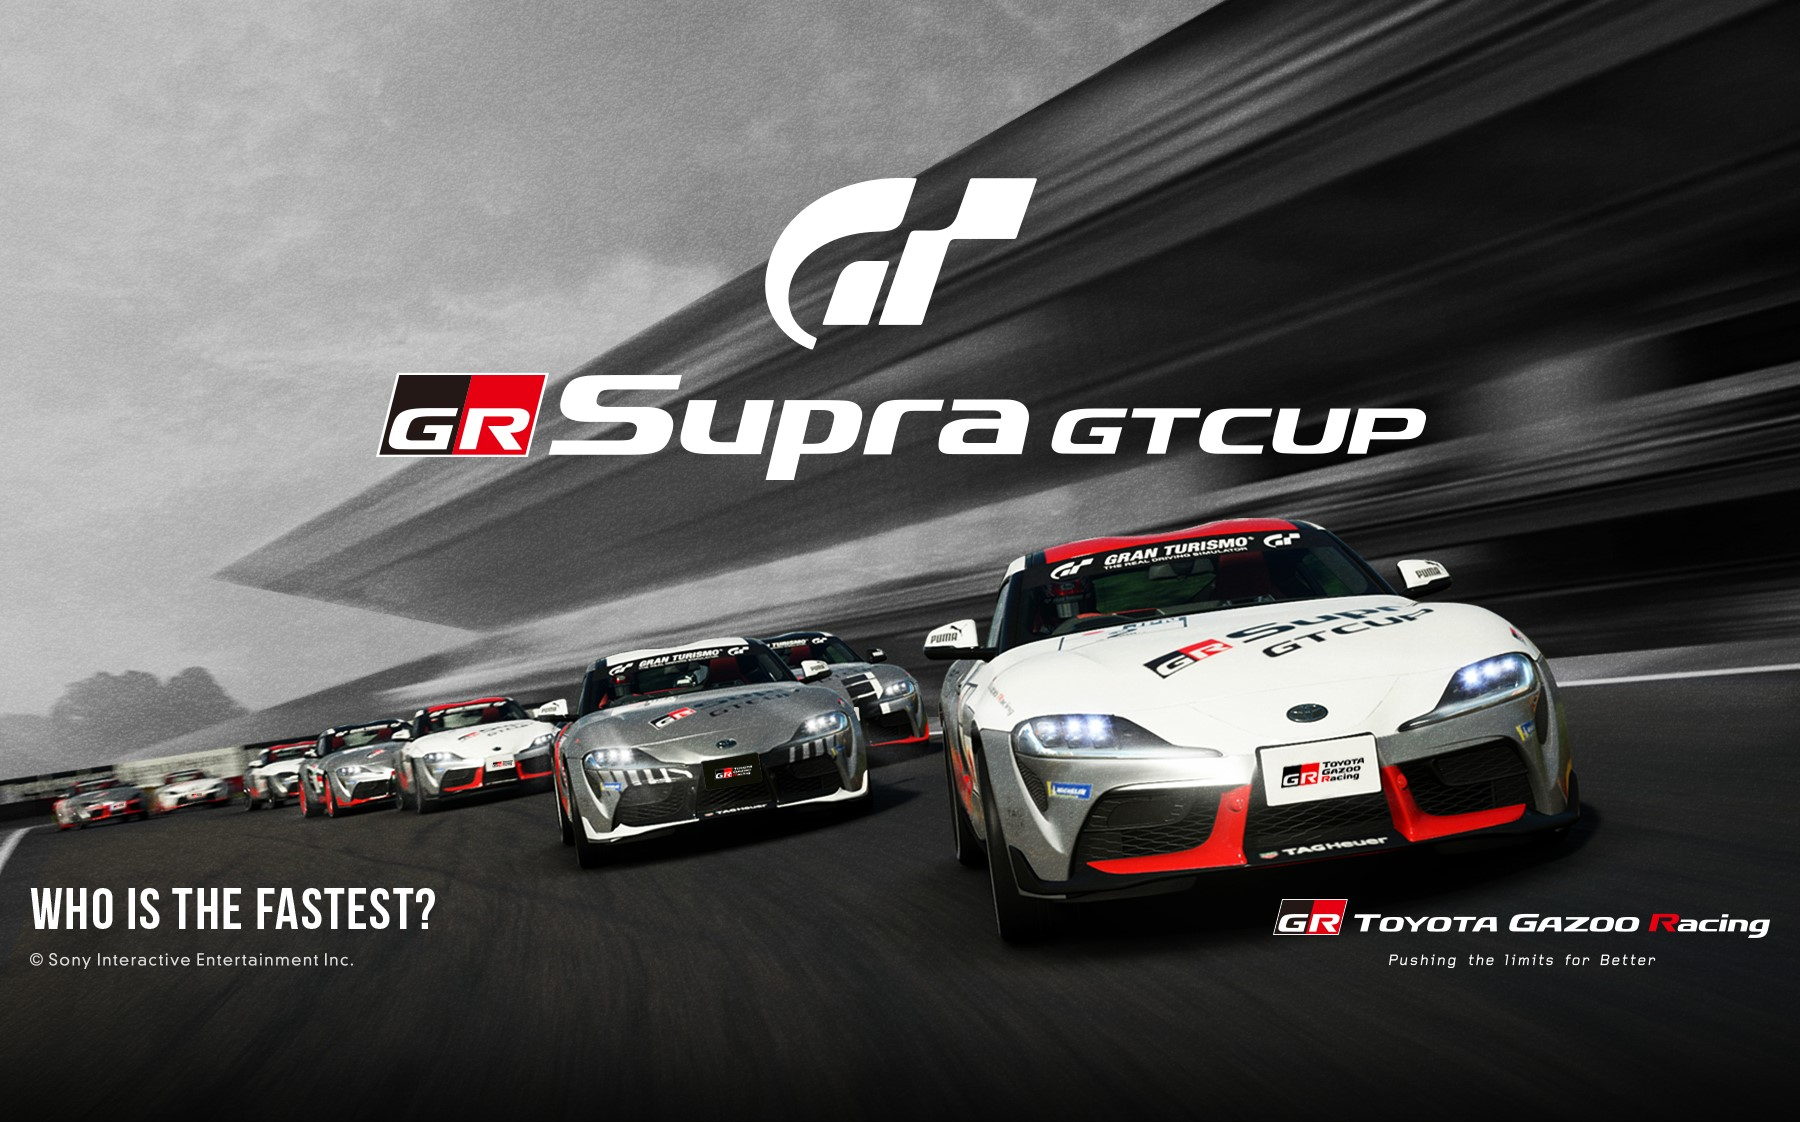 Welcome To The Gr Supra Gt Cup 2020 Series A One Make Championship To Find The World S Best Supra Driver News Gran Turismo Com